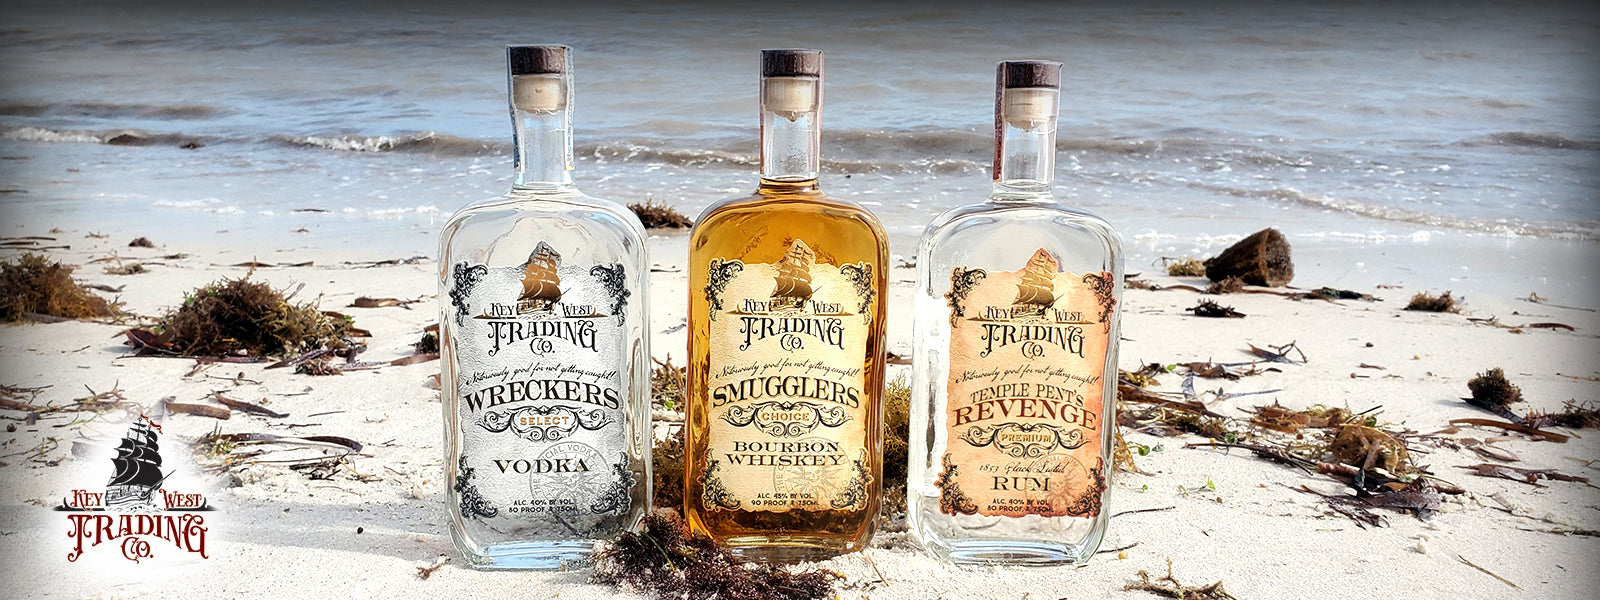 Buy Key West Trading Company Spirits Online at CaskCartel.com